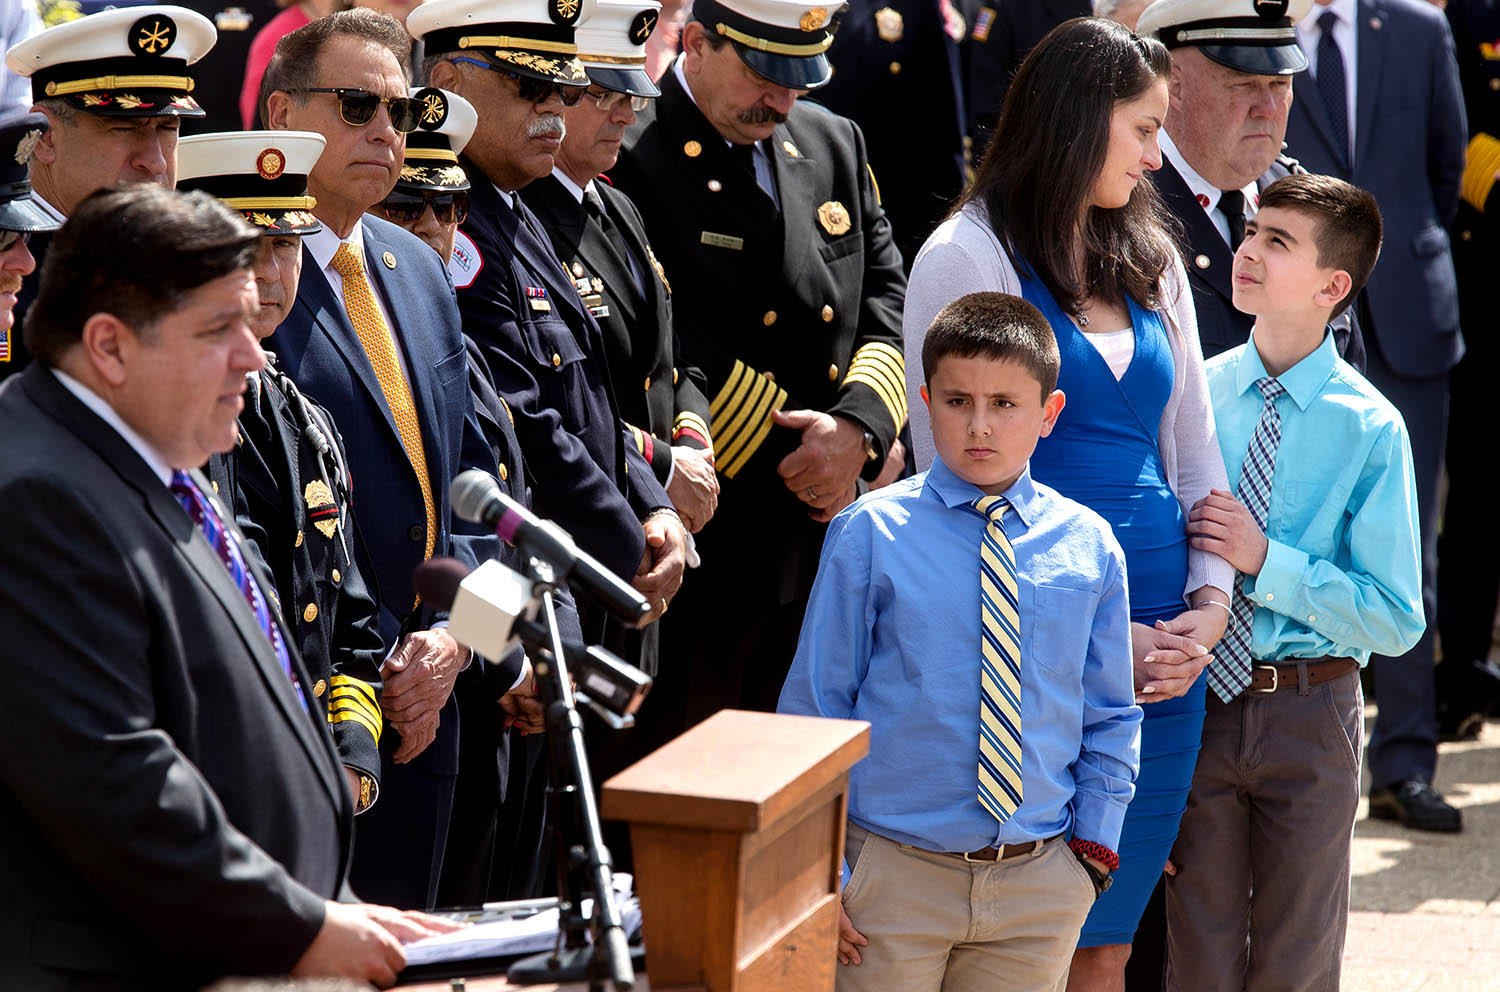 Joshua Bucio touches the arm of his mom, Amy Zabojnik, as Illinois Gov. J.B. Pritzker talks about his dad, Chicago firefighter Juan Bucio who was killed in the line of duty in May of 2018, during the 26th Annual Illinois Fallen Firefighter Memorial Ceremony at the Illinois Fallen Firefighter Monument Tuesday, May 14, 2019. Jacob is at right. [Ted Schurter/The State Journal-Register]